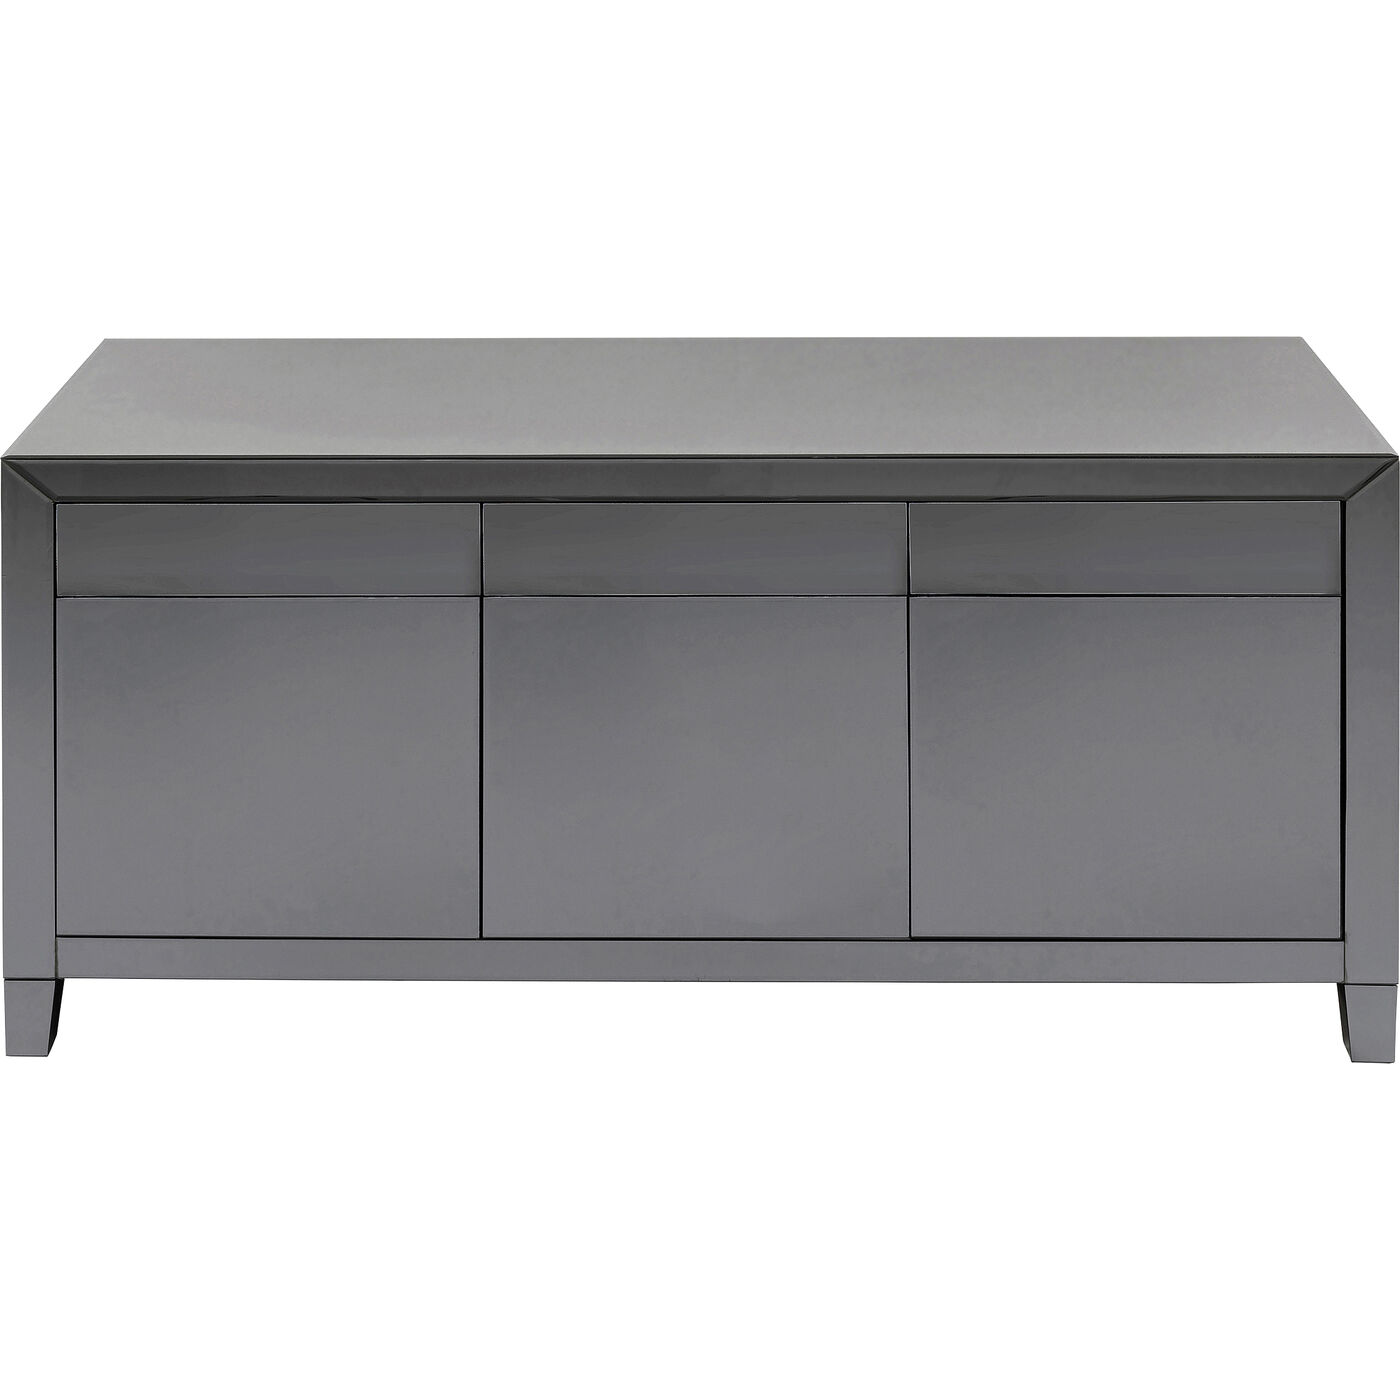 Sideboard Luxury Push Grau